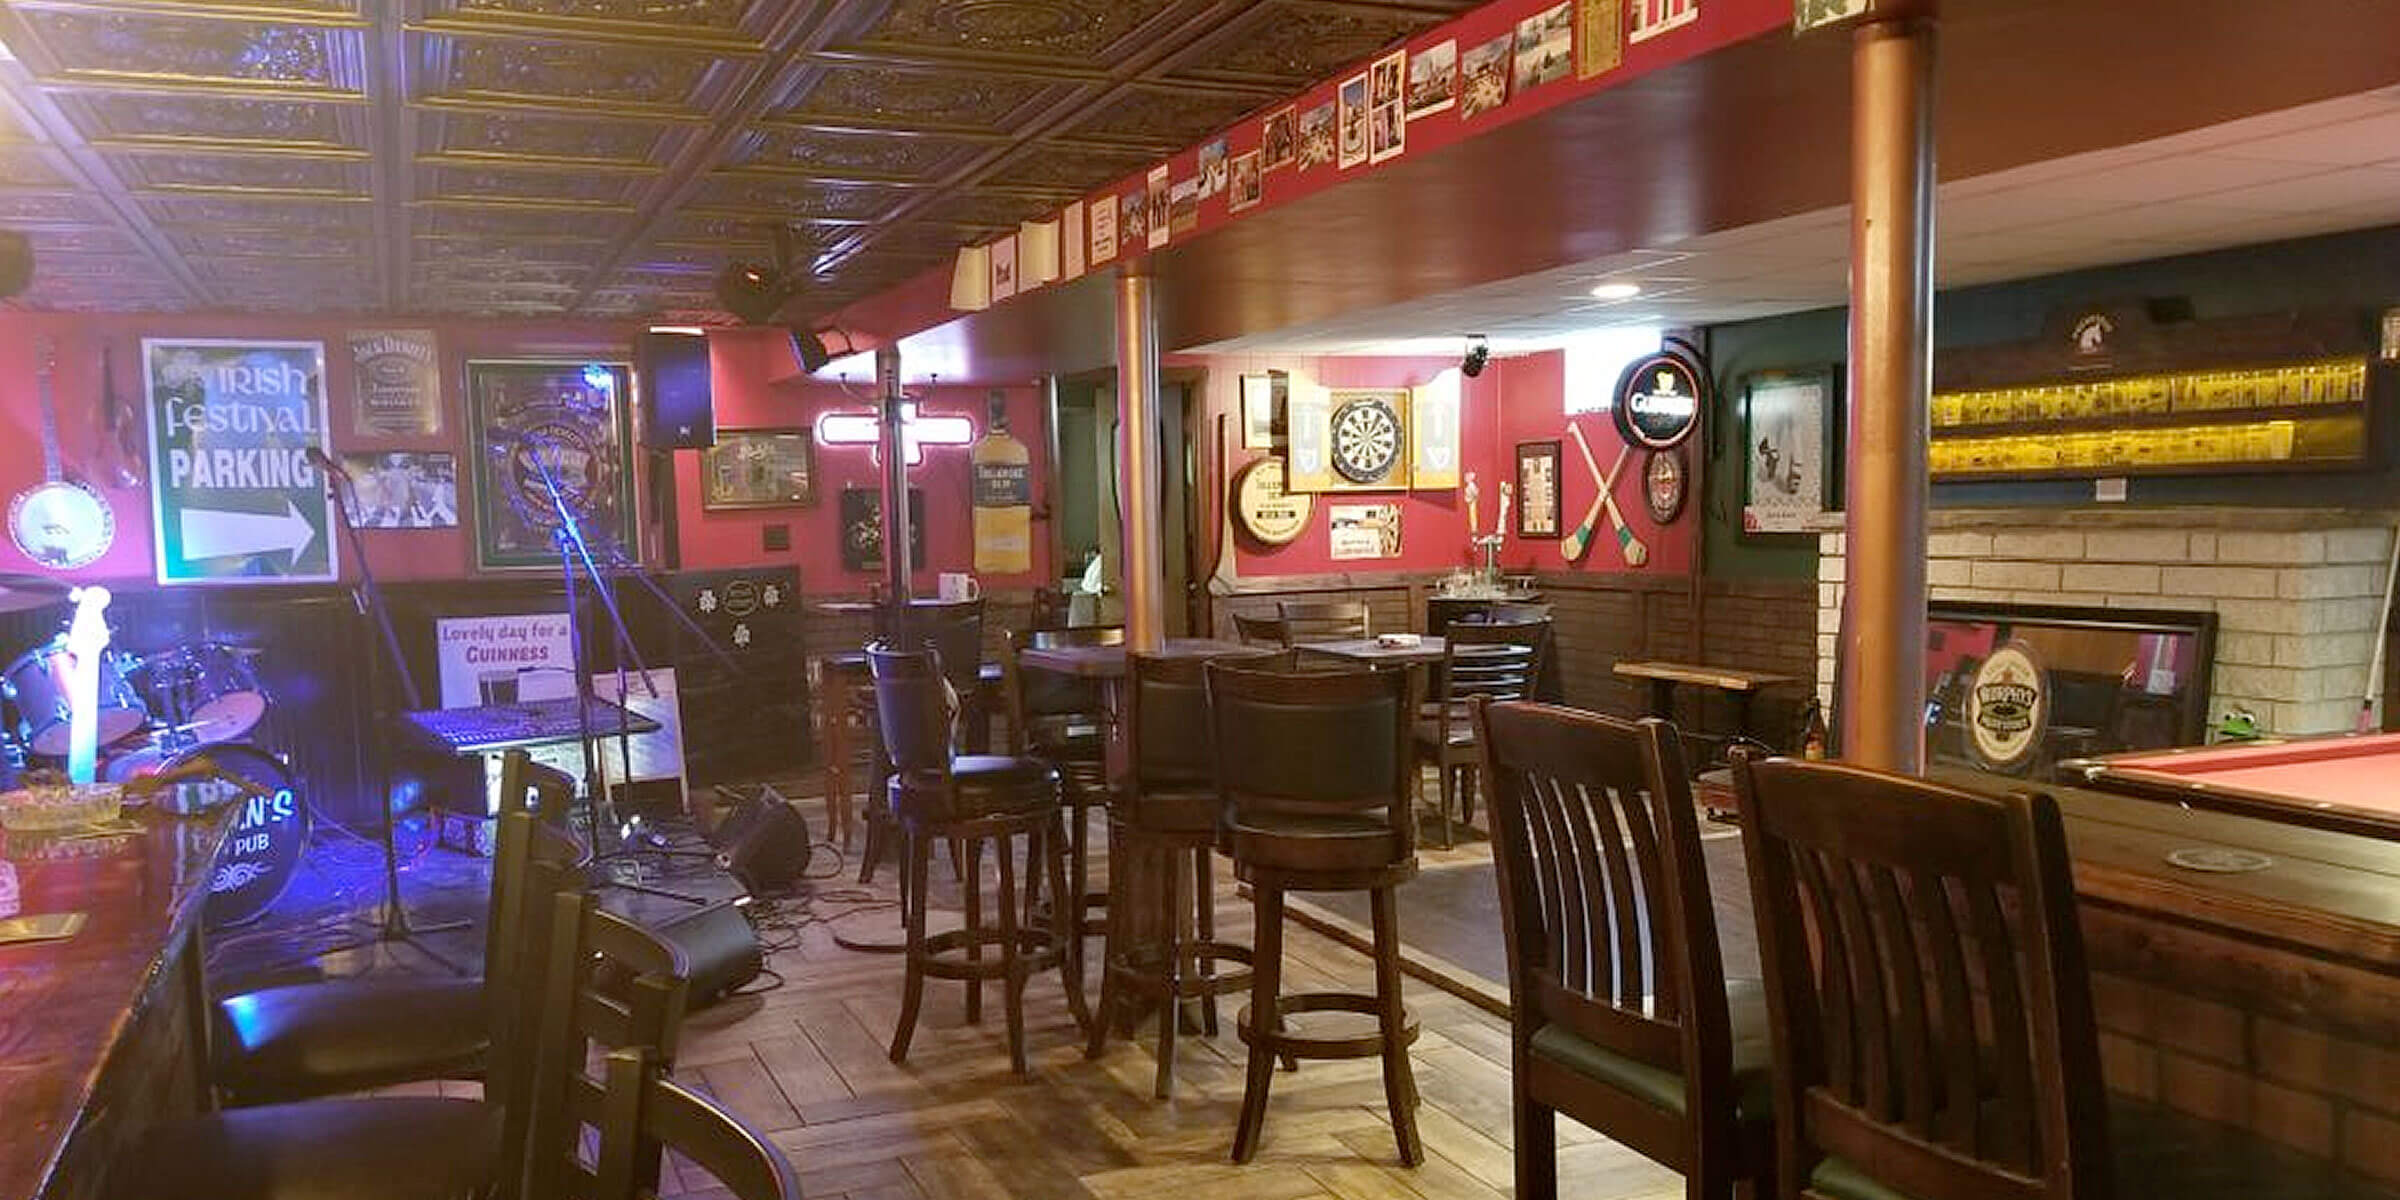 An Irishman living in the U.S. came up with a perfect way to combat being homesick: build an Irish pub in his basement with pints of Guinness on tap.